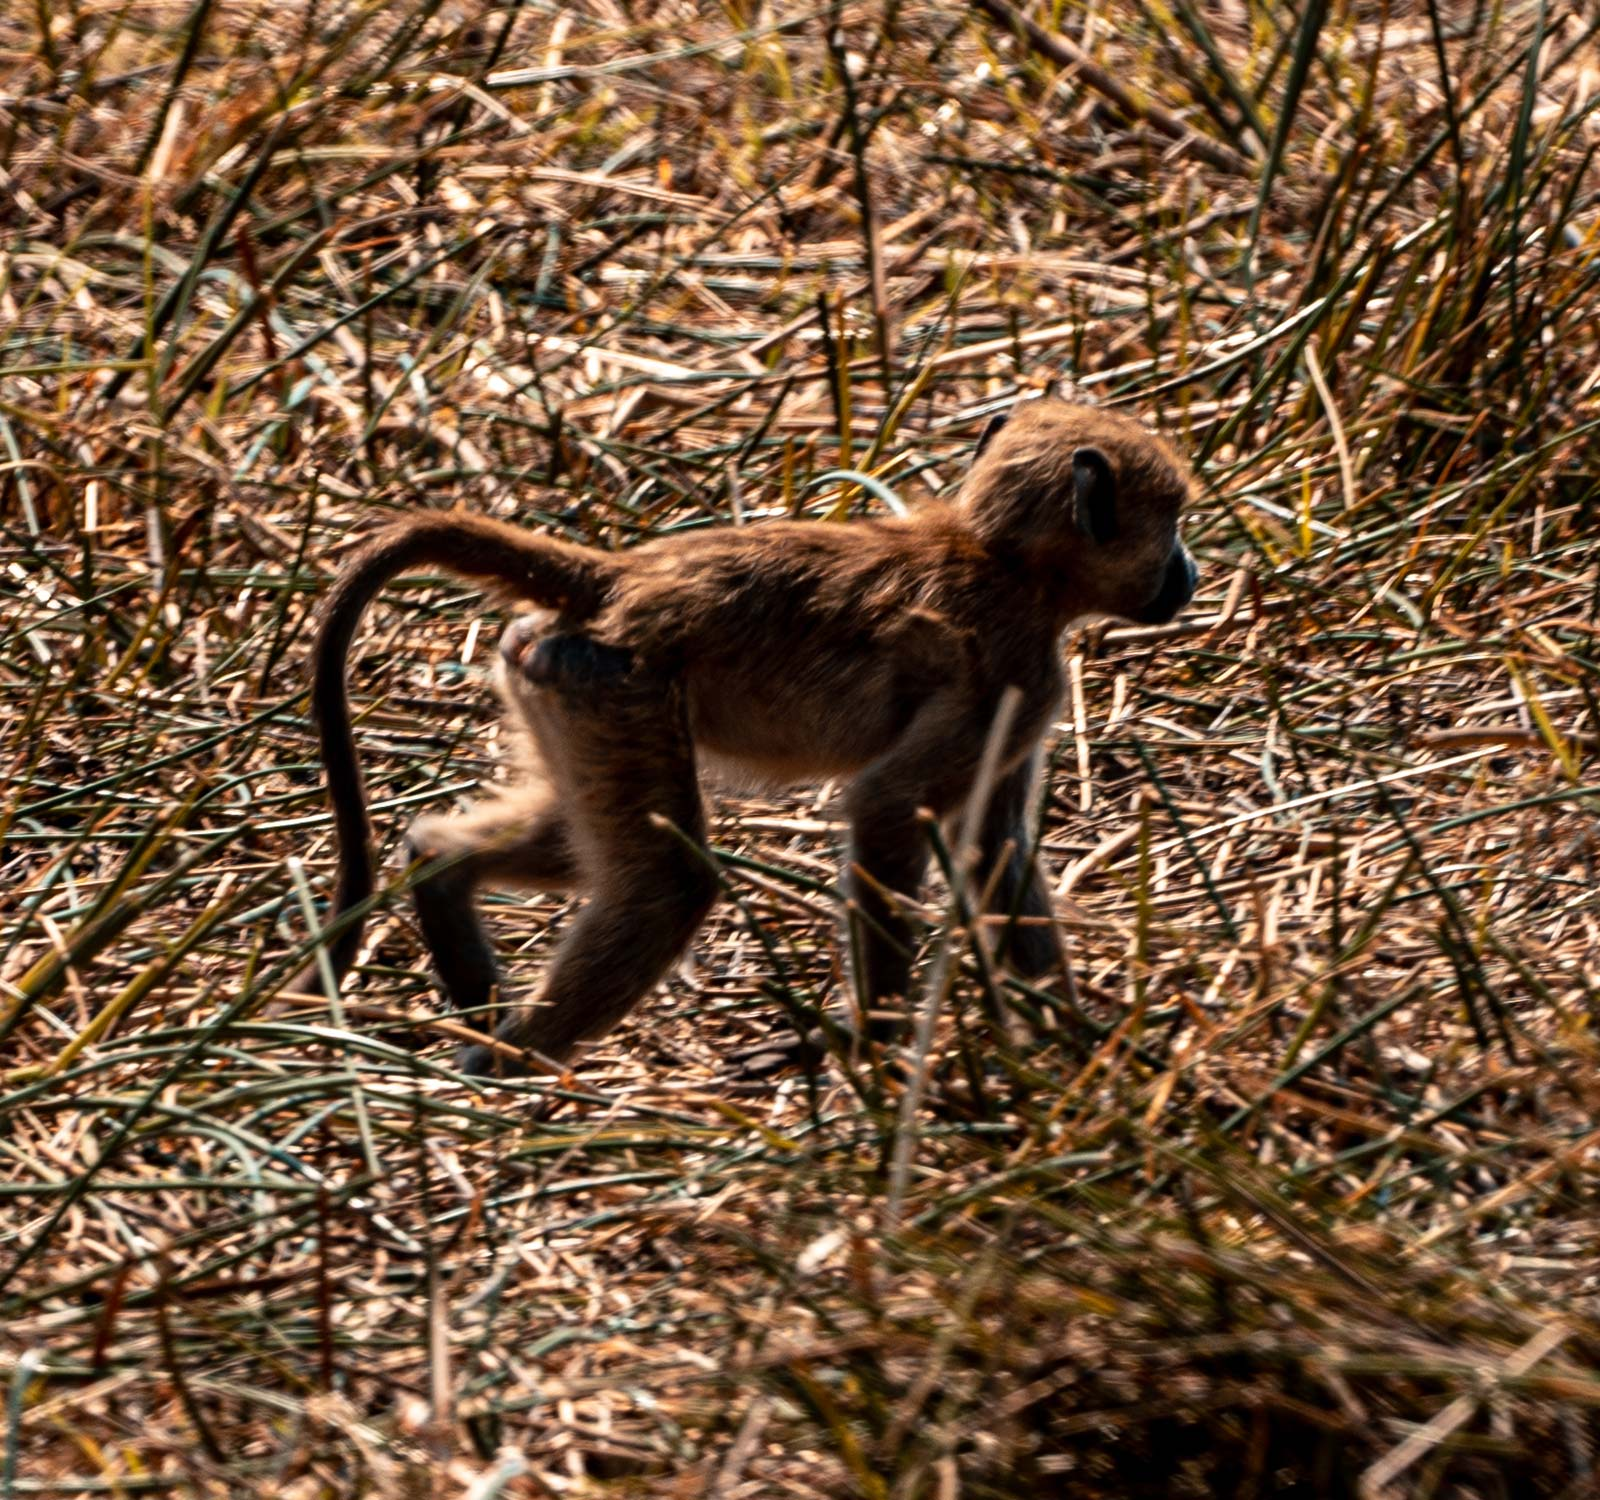 Monkey in Botswana, Africa. Cheetah, cubs & the most incredible dinner setting